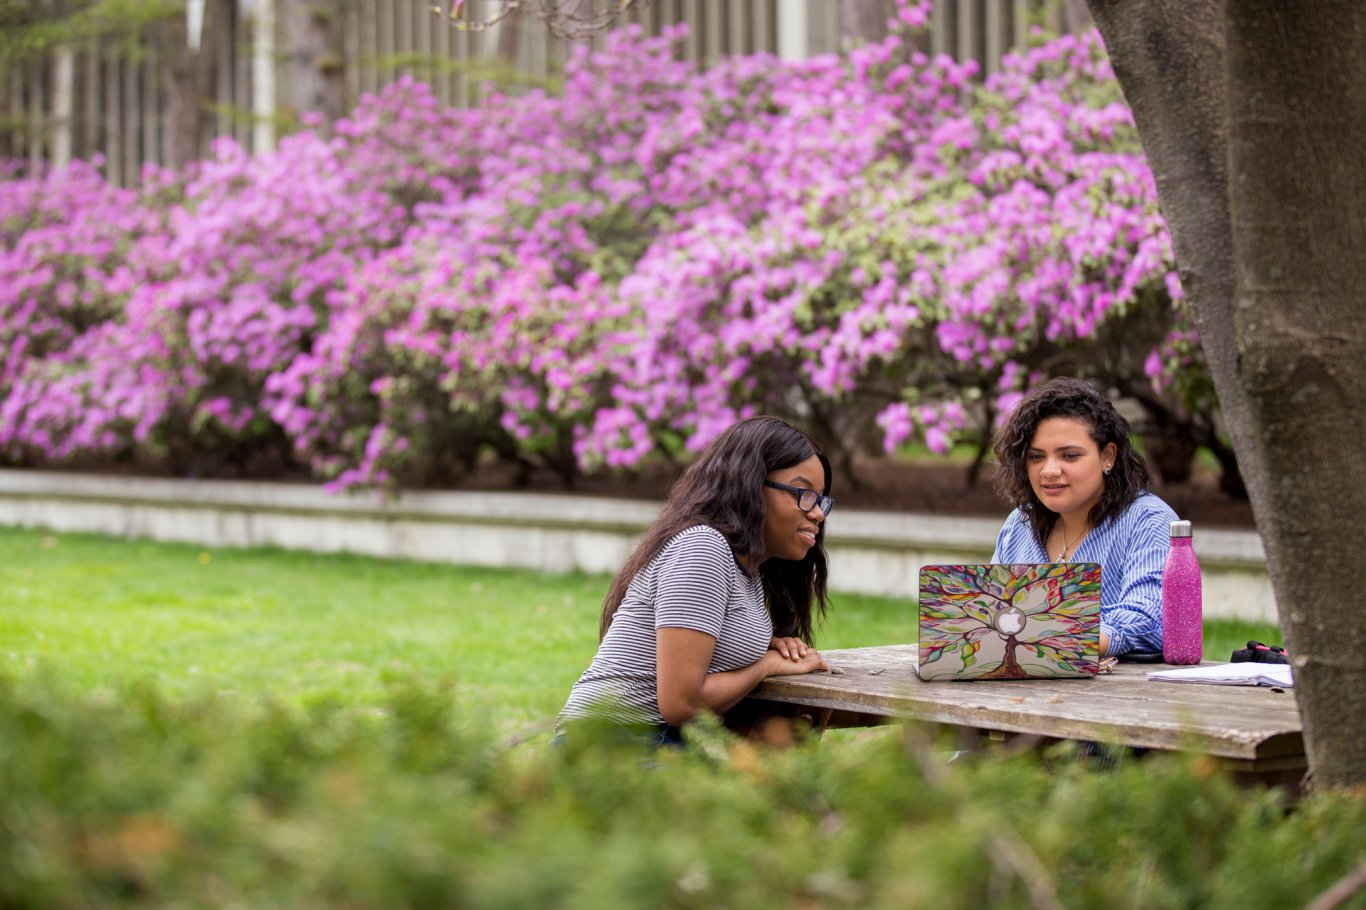 Two students study outside on UAlbany's Main Campus during the spring bloom.